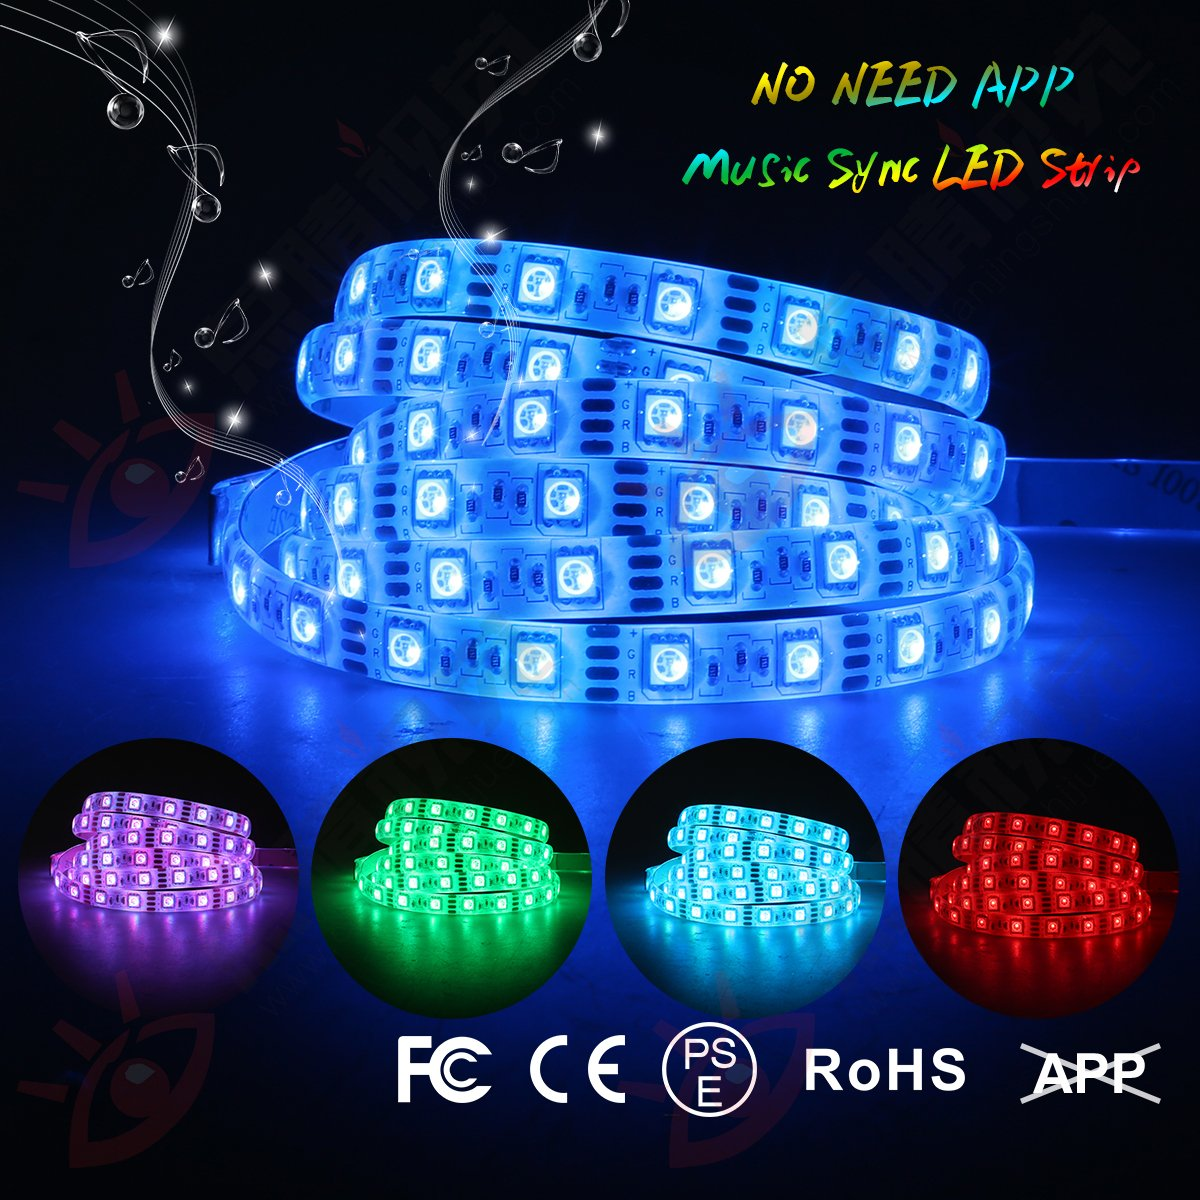 LED Light Strip Sync Music Light Strip 3.94FT 5V USB LED Strip IP65 Waterproof Dream Color Lights 5050 RGB Strip Kit with Controller Music Changing LED Strip Light by DotStone